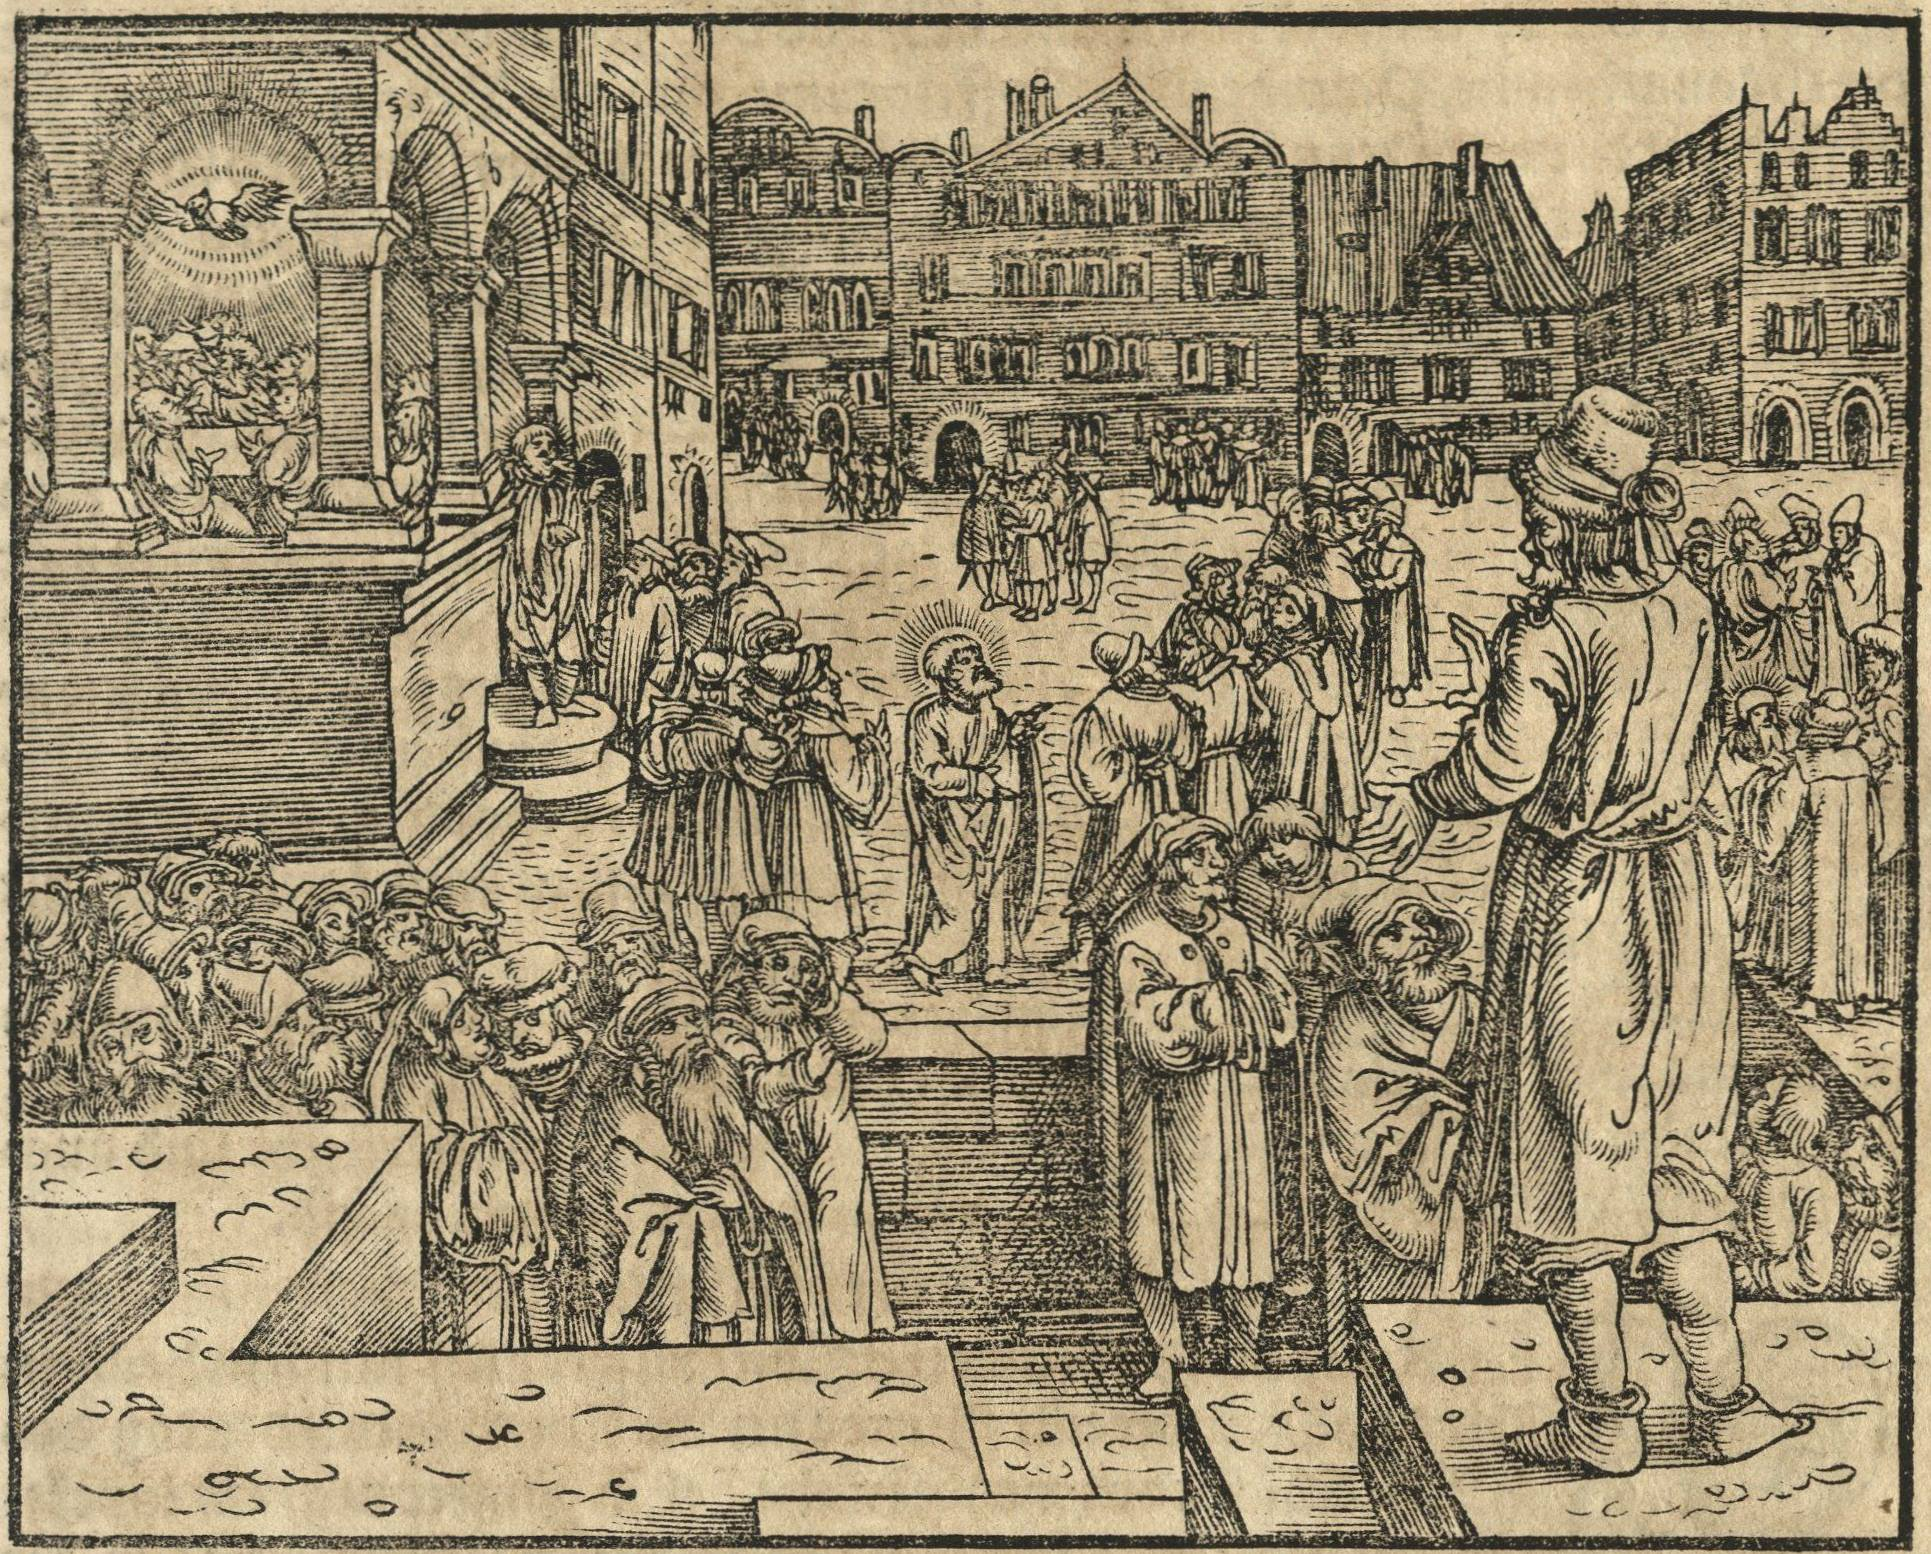 Illustration from the Prophet Joel in Luther's translation of the prophets